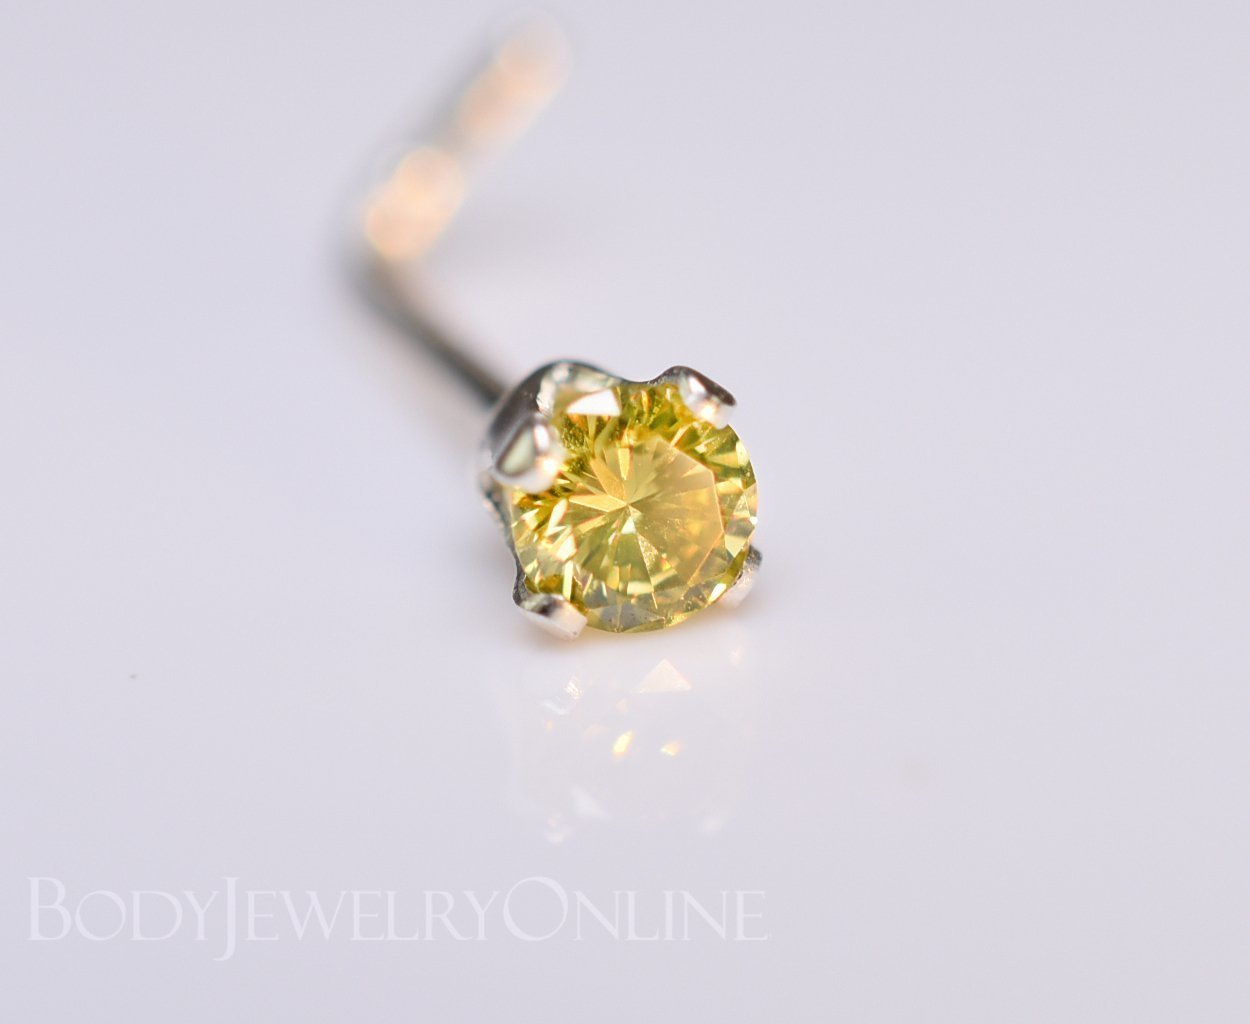 Genuine CANARY YELLOW DIAMOND Nose Stud 2mm - Post w/ 14k Solid Yellow or White Gold or Sterling Silver - Helix Tragus Lobe Lip Cartilage